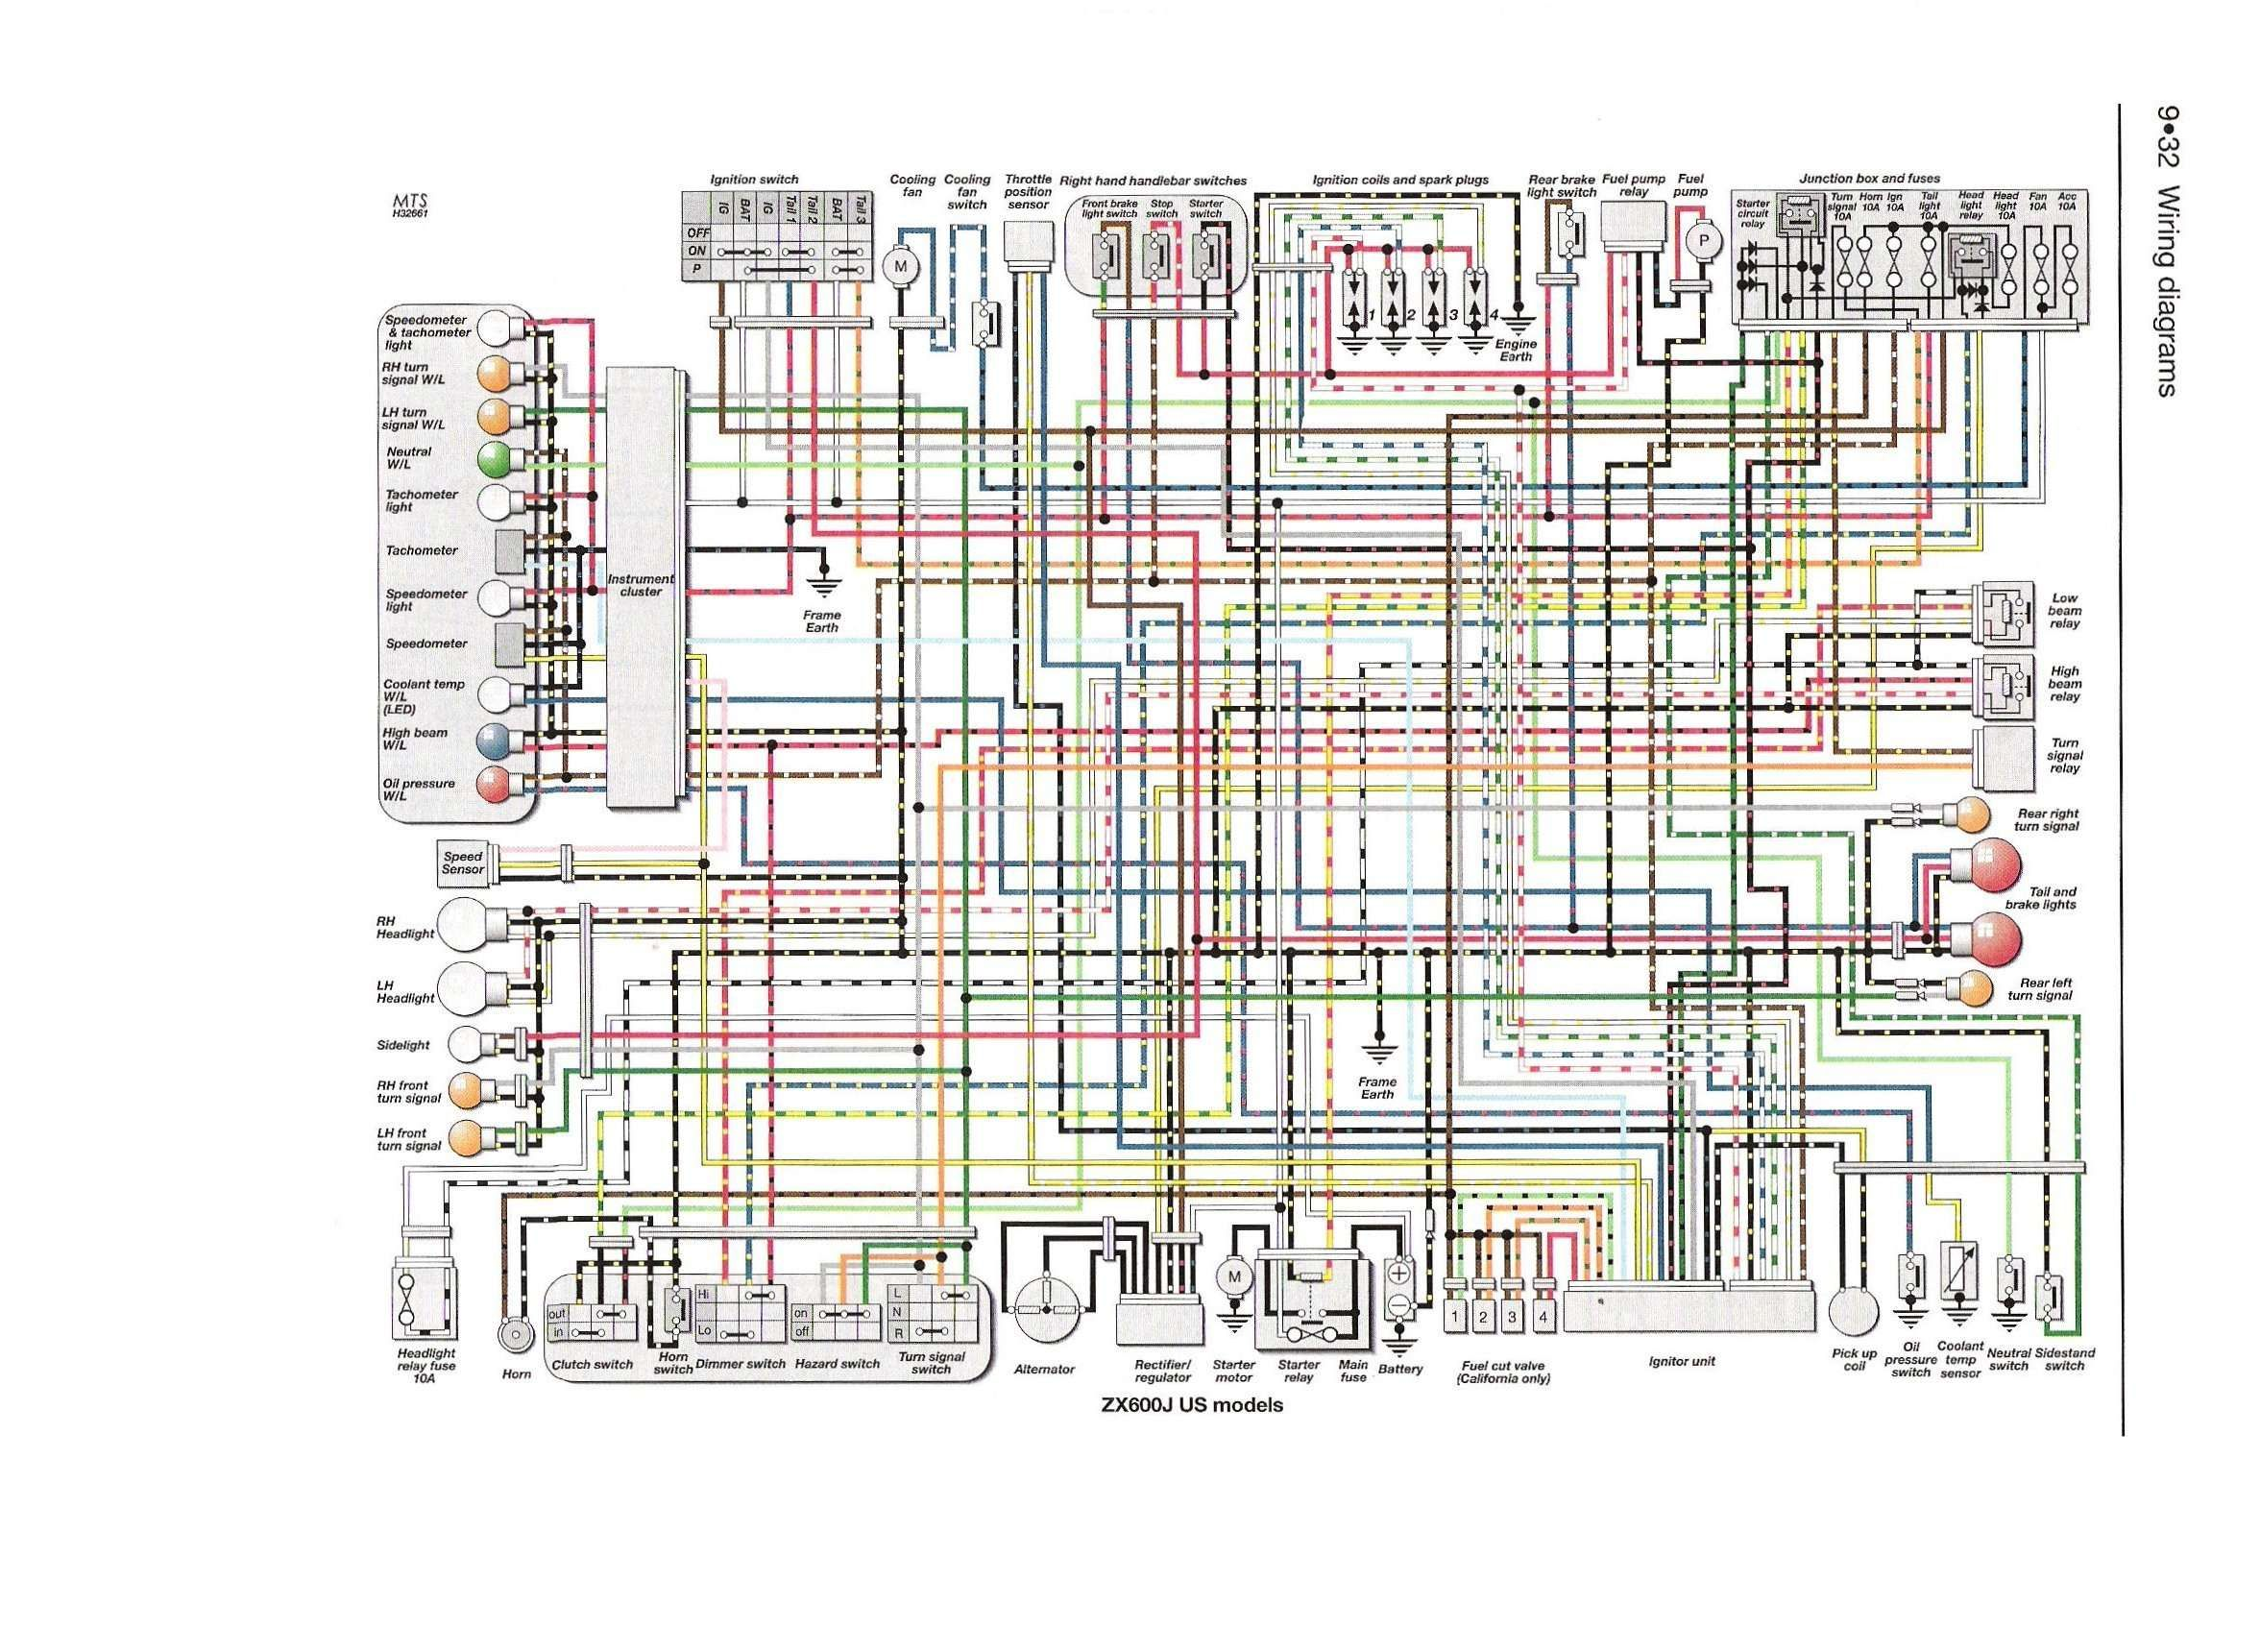 kawasaki ninja wiring diagrams complete car engine scheme and [ 2353 x 1720 Pixel ]